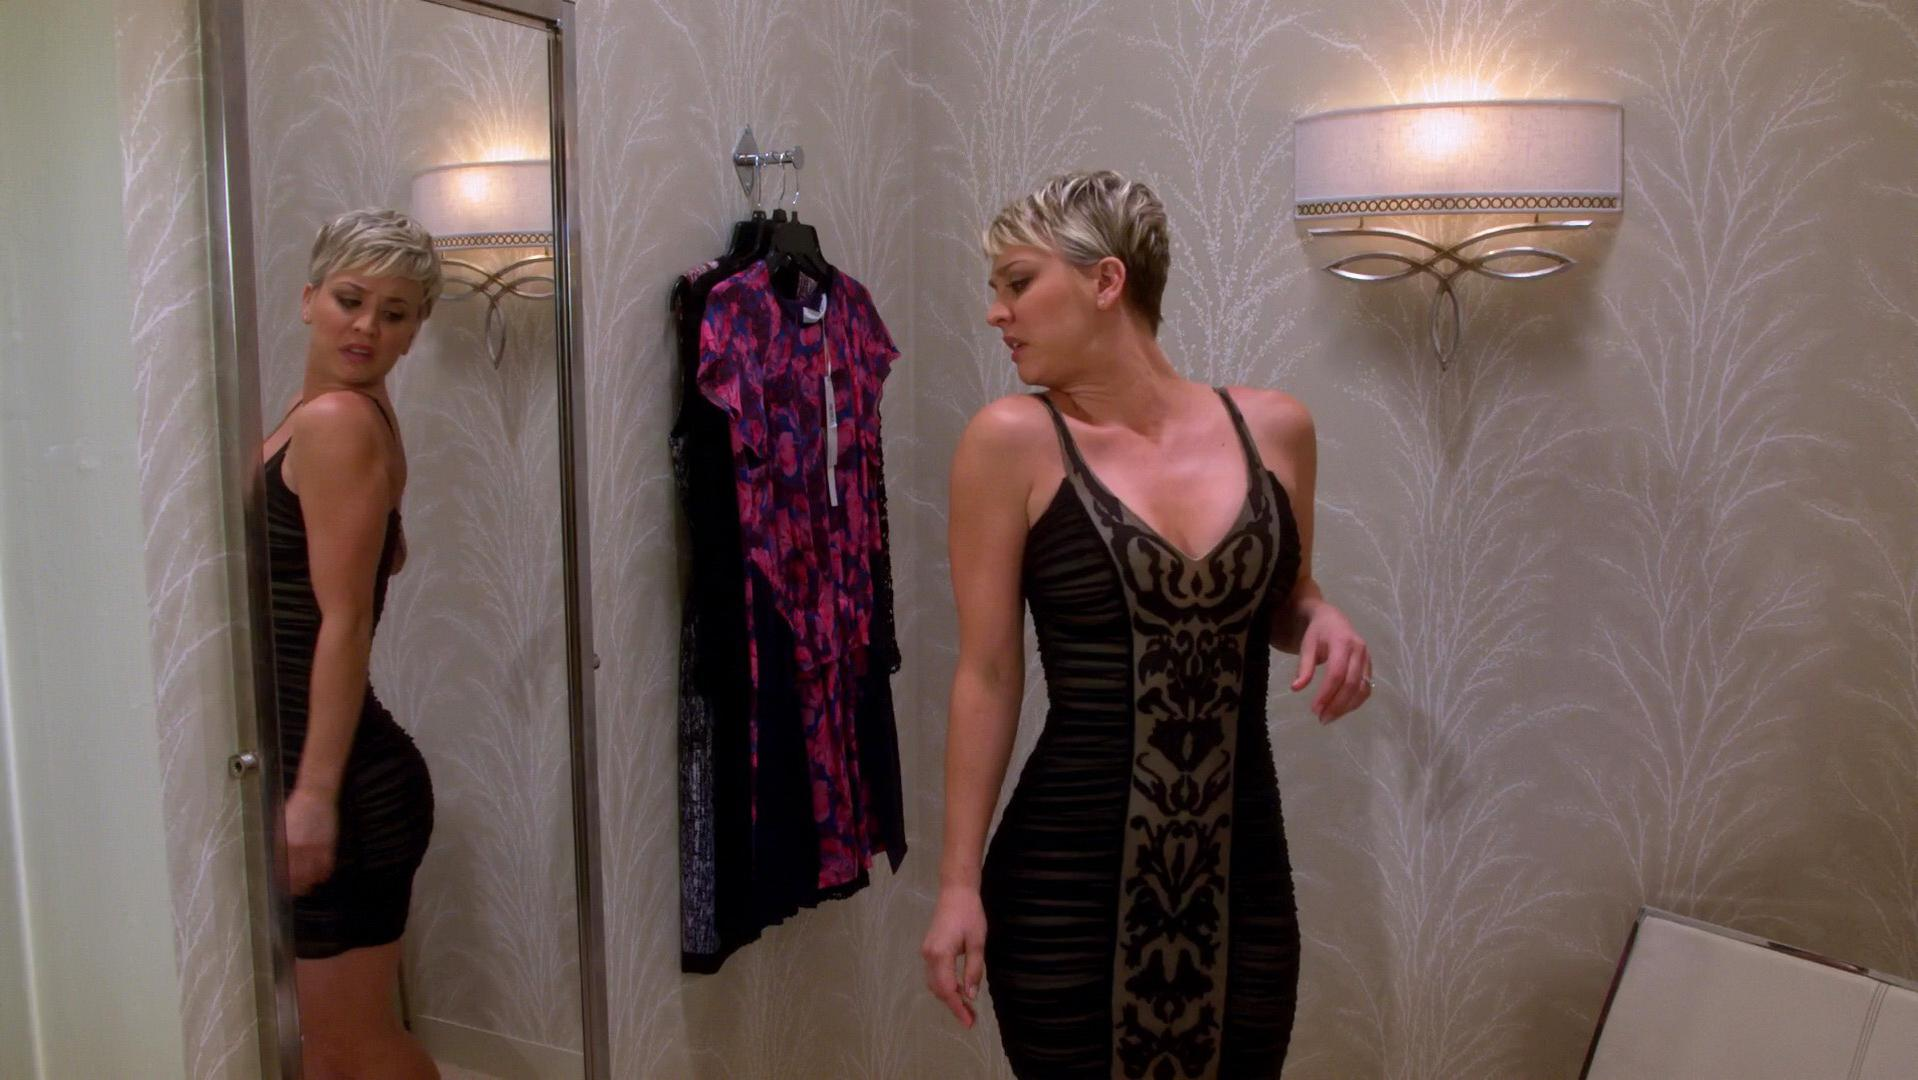 Kaley Cuoco sexy - The Big Bang Theory s08e12 (2015)